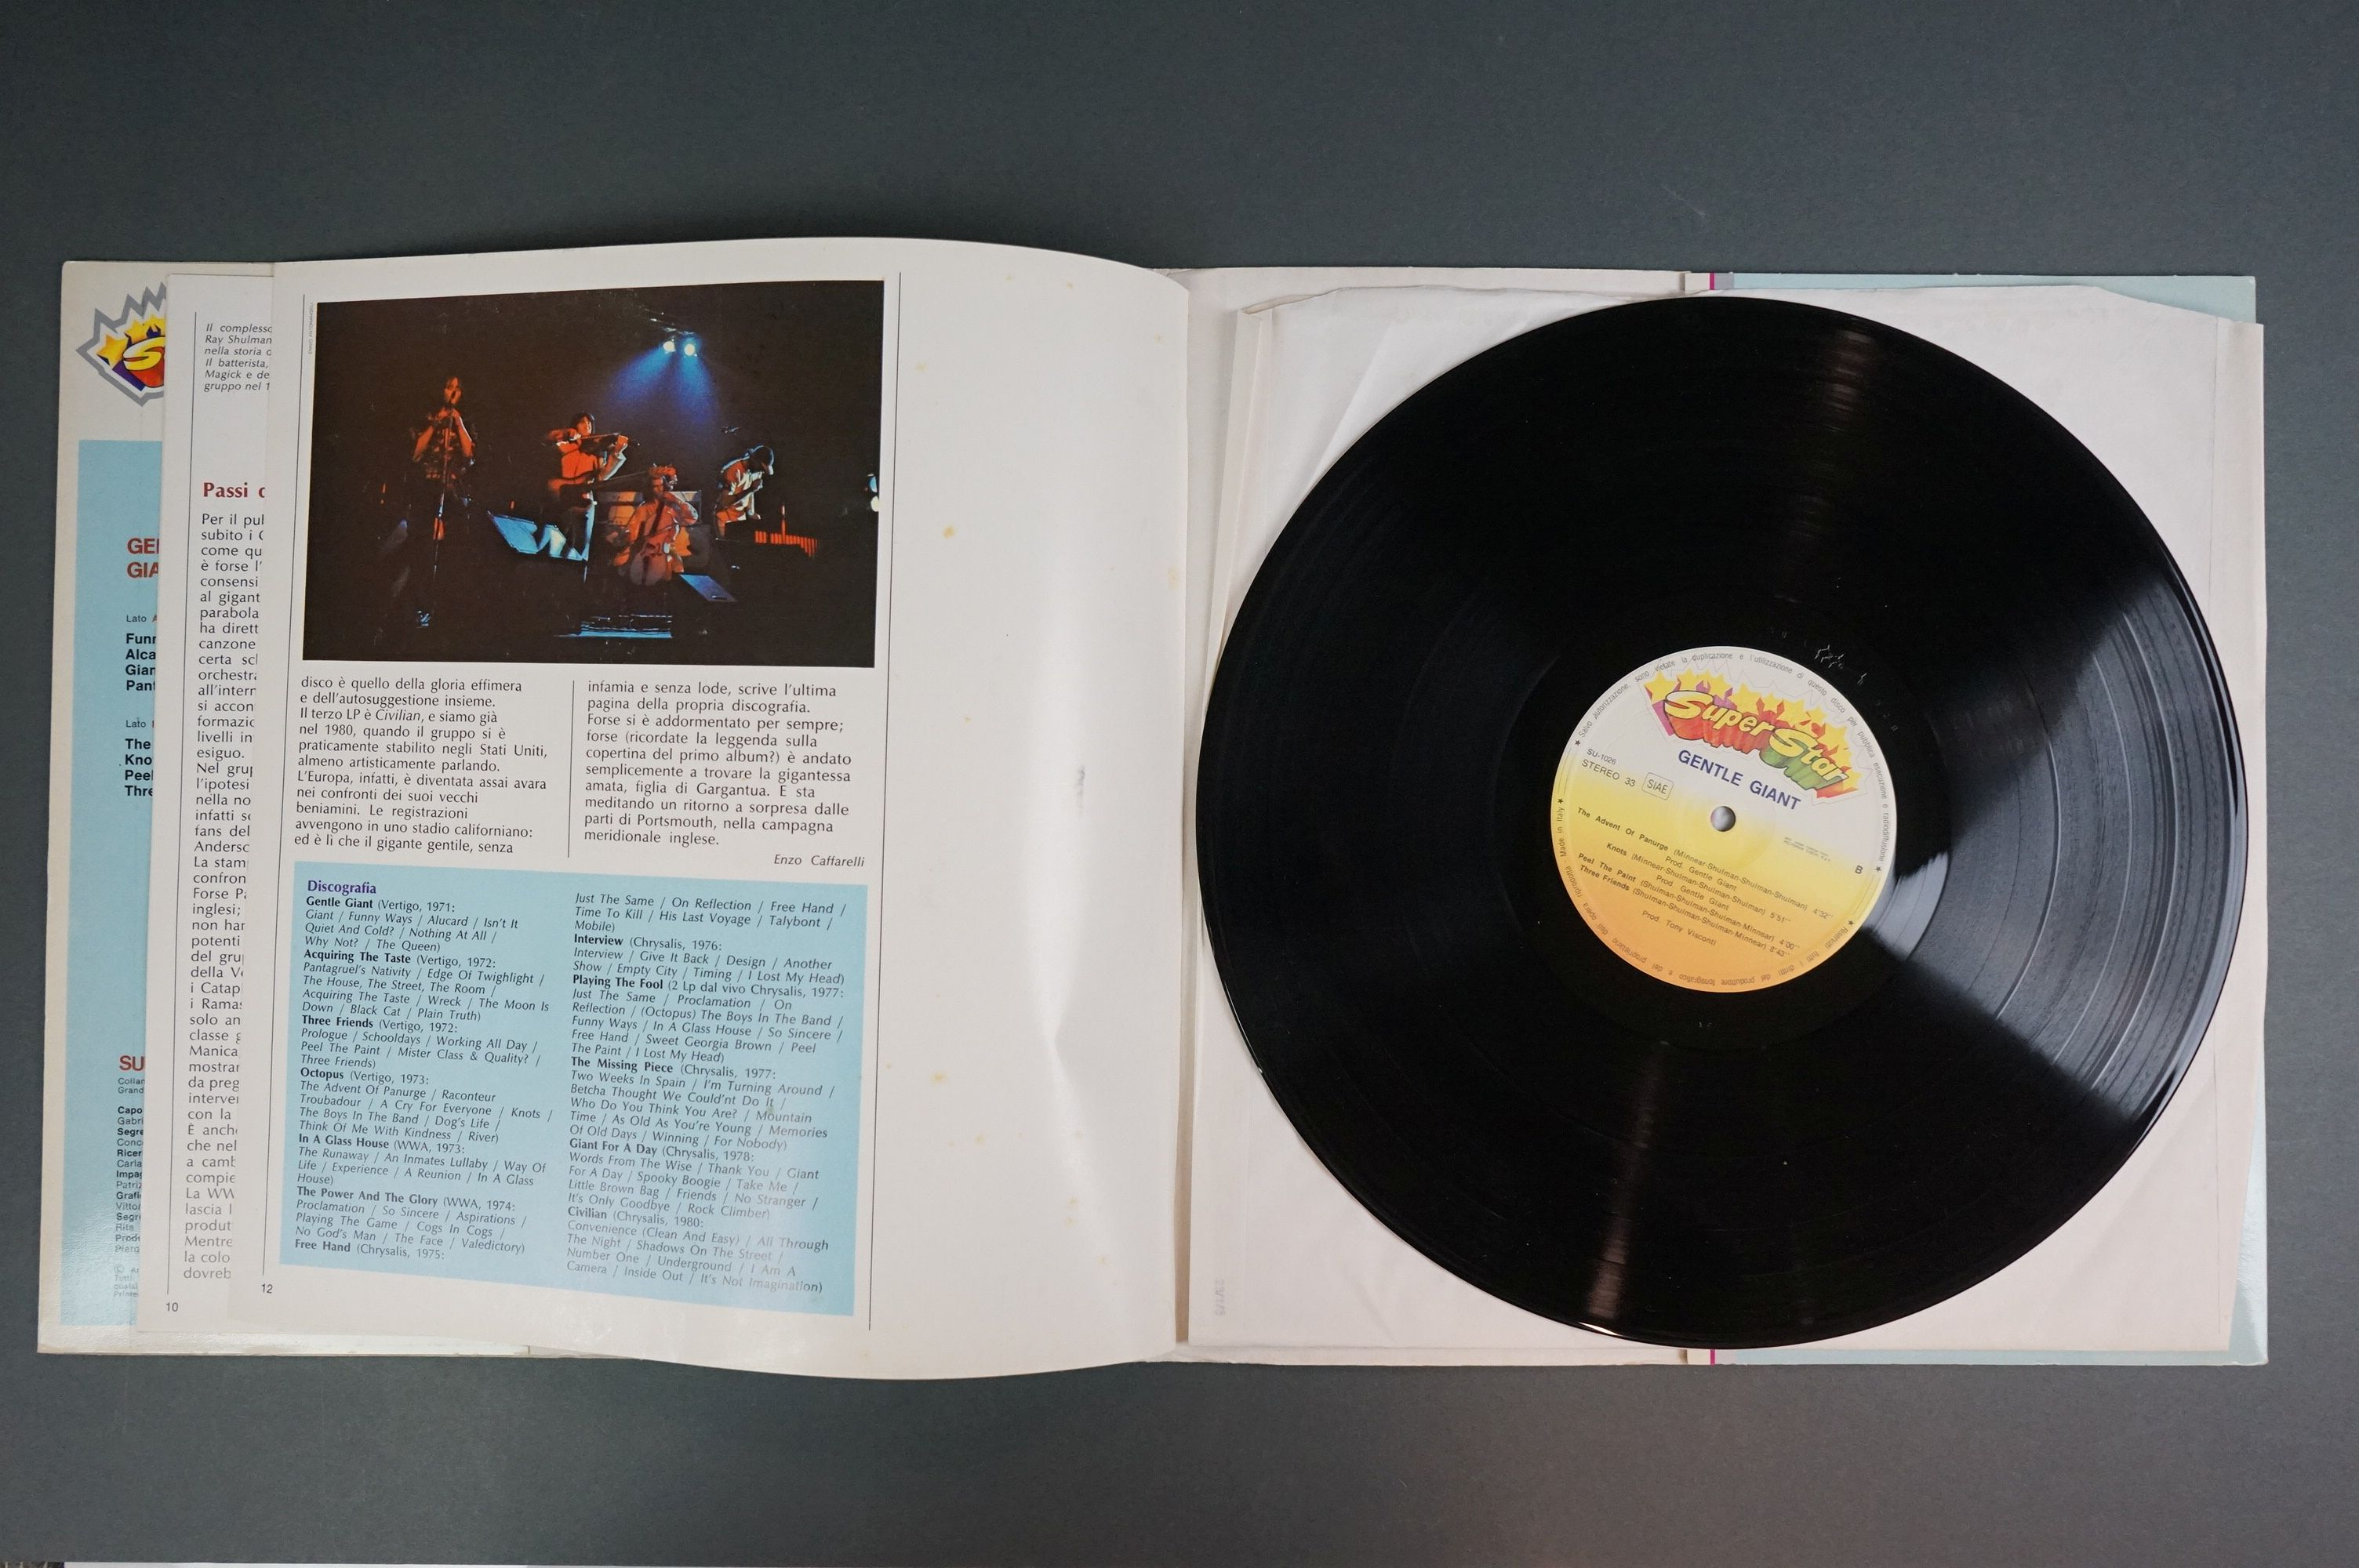 Vinyl - Two Gentle Giant LPs to include In A Glasshouse WWA002 Photograph card and printed inners, - Image 9 of 10